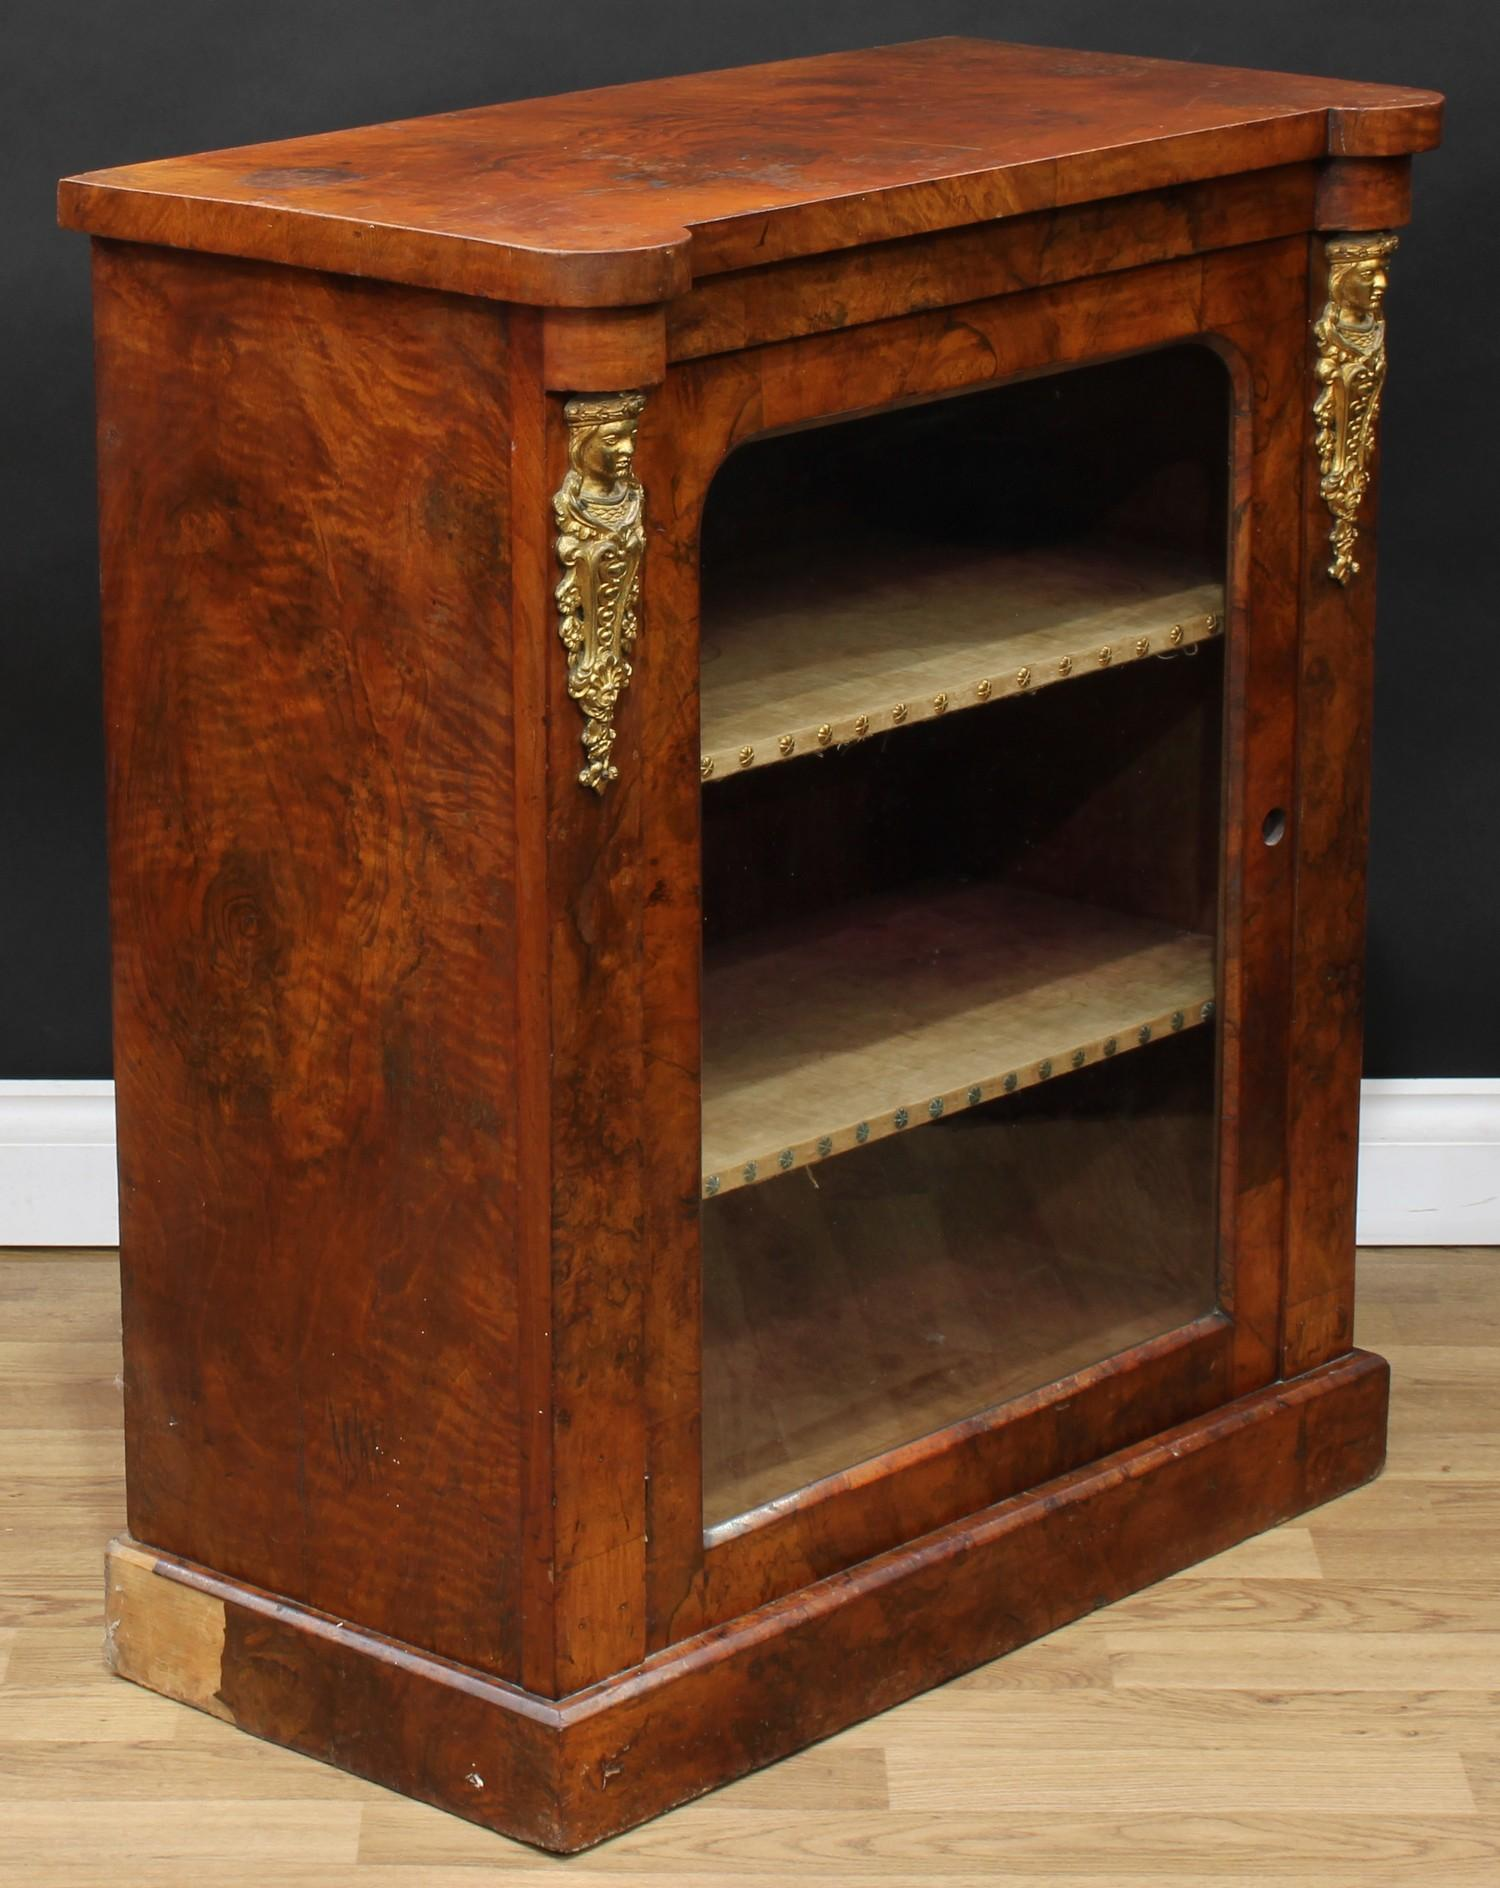 A Victorian gilt metal mounted walnut pier display cabinet or bookcase, hipped rectangular top above - Image 3 of 4